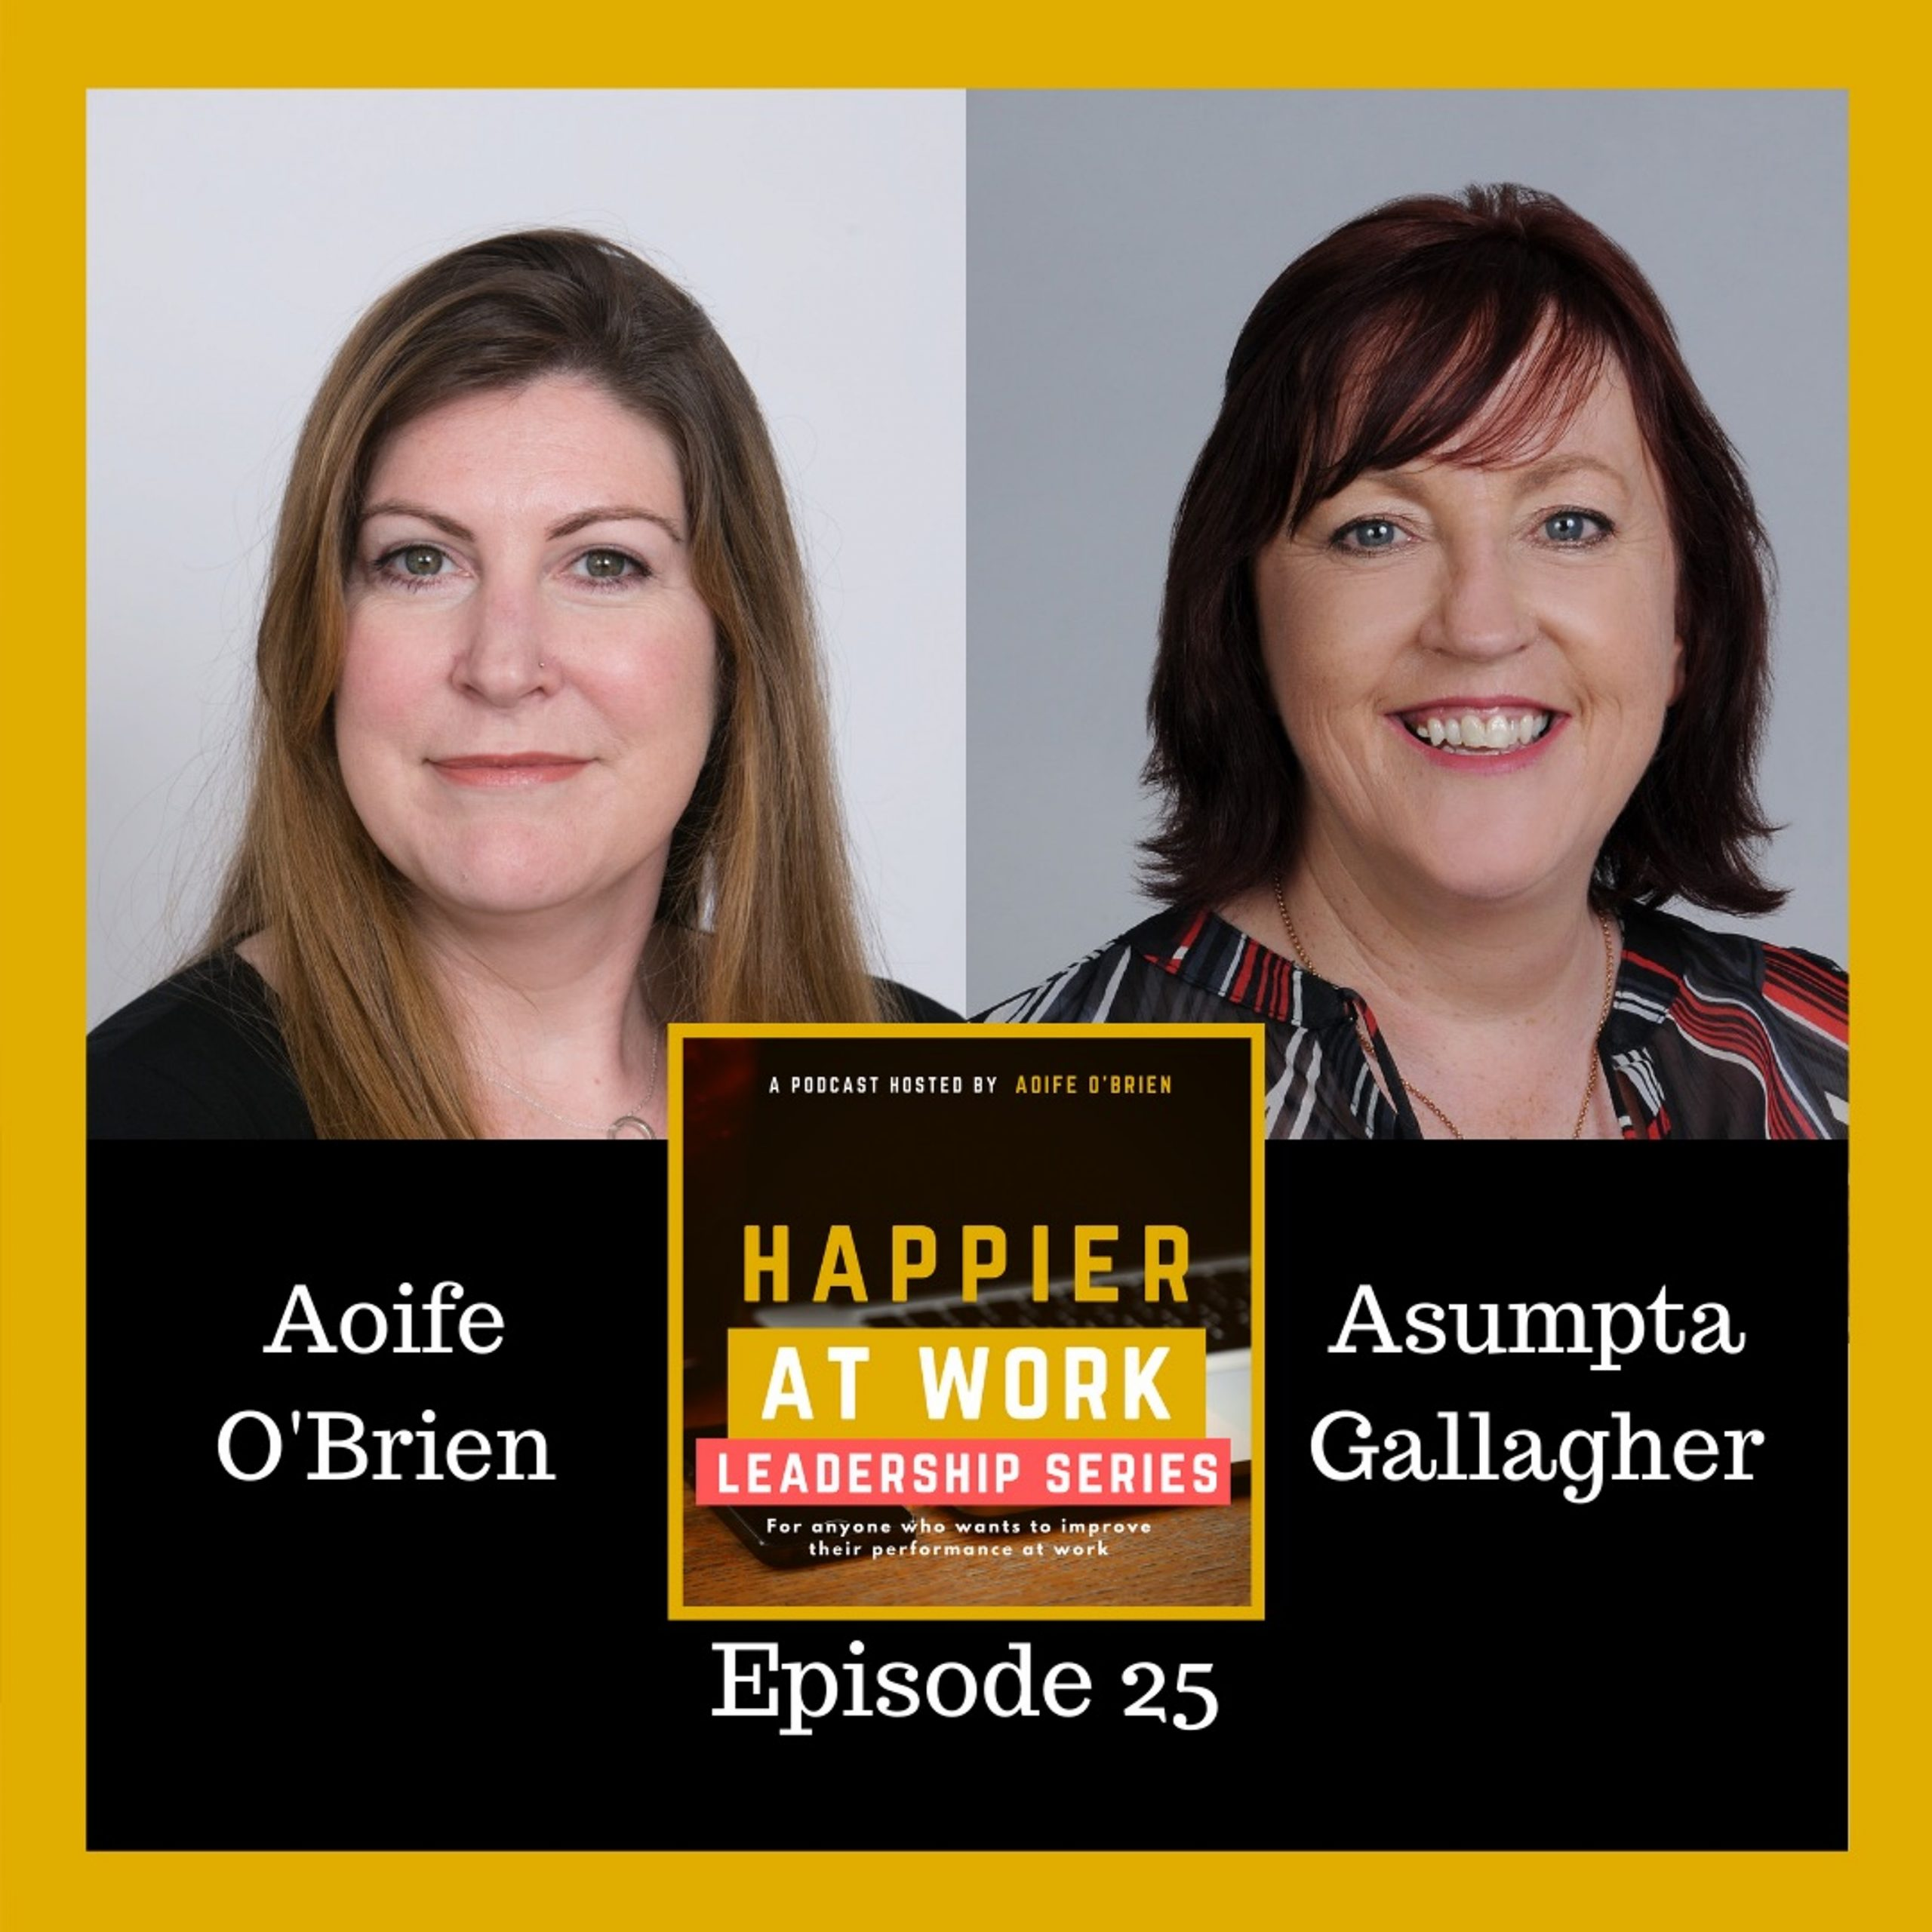 Happier at work podcast Asumpta Gallagher